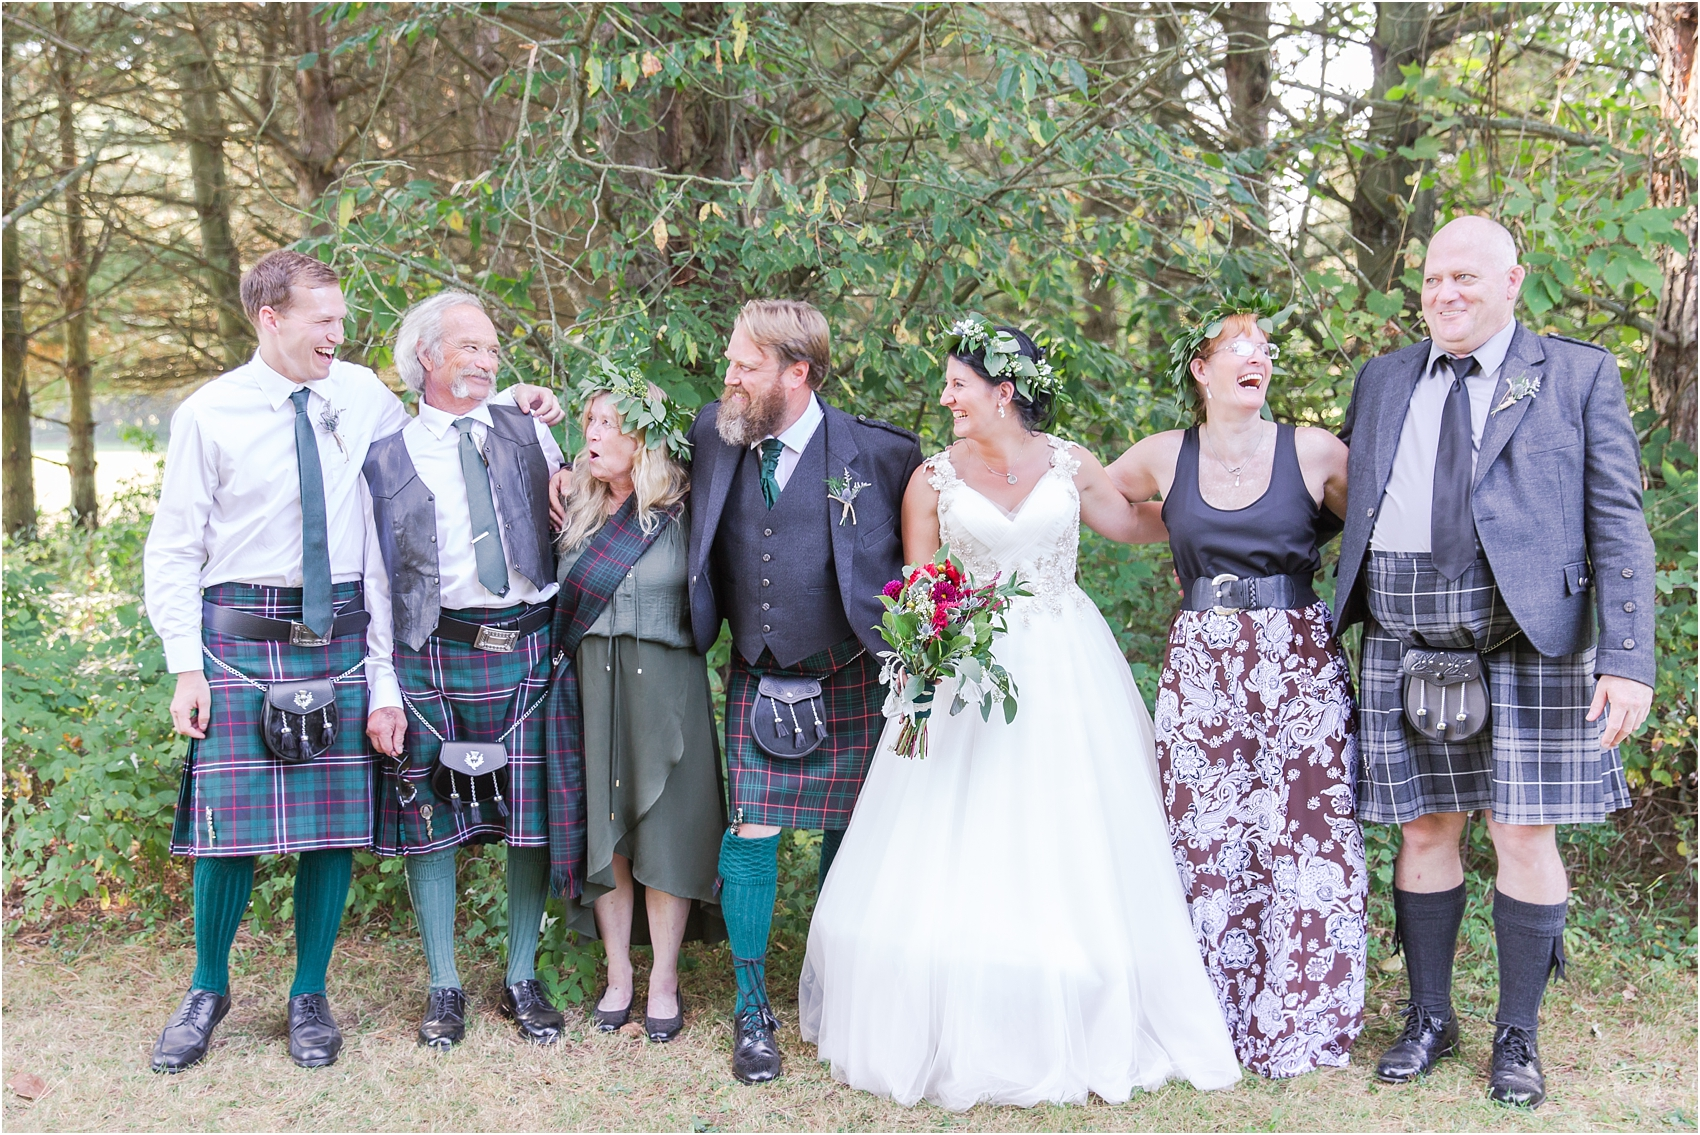 scottish-inspired-wedding-photos-in-the-country-in-port-sanilac-michigan-by-courtney-carolyn-photography_0036.jpg